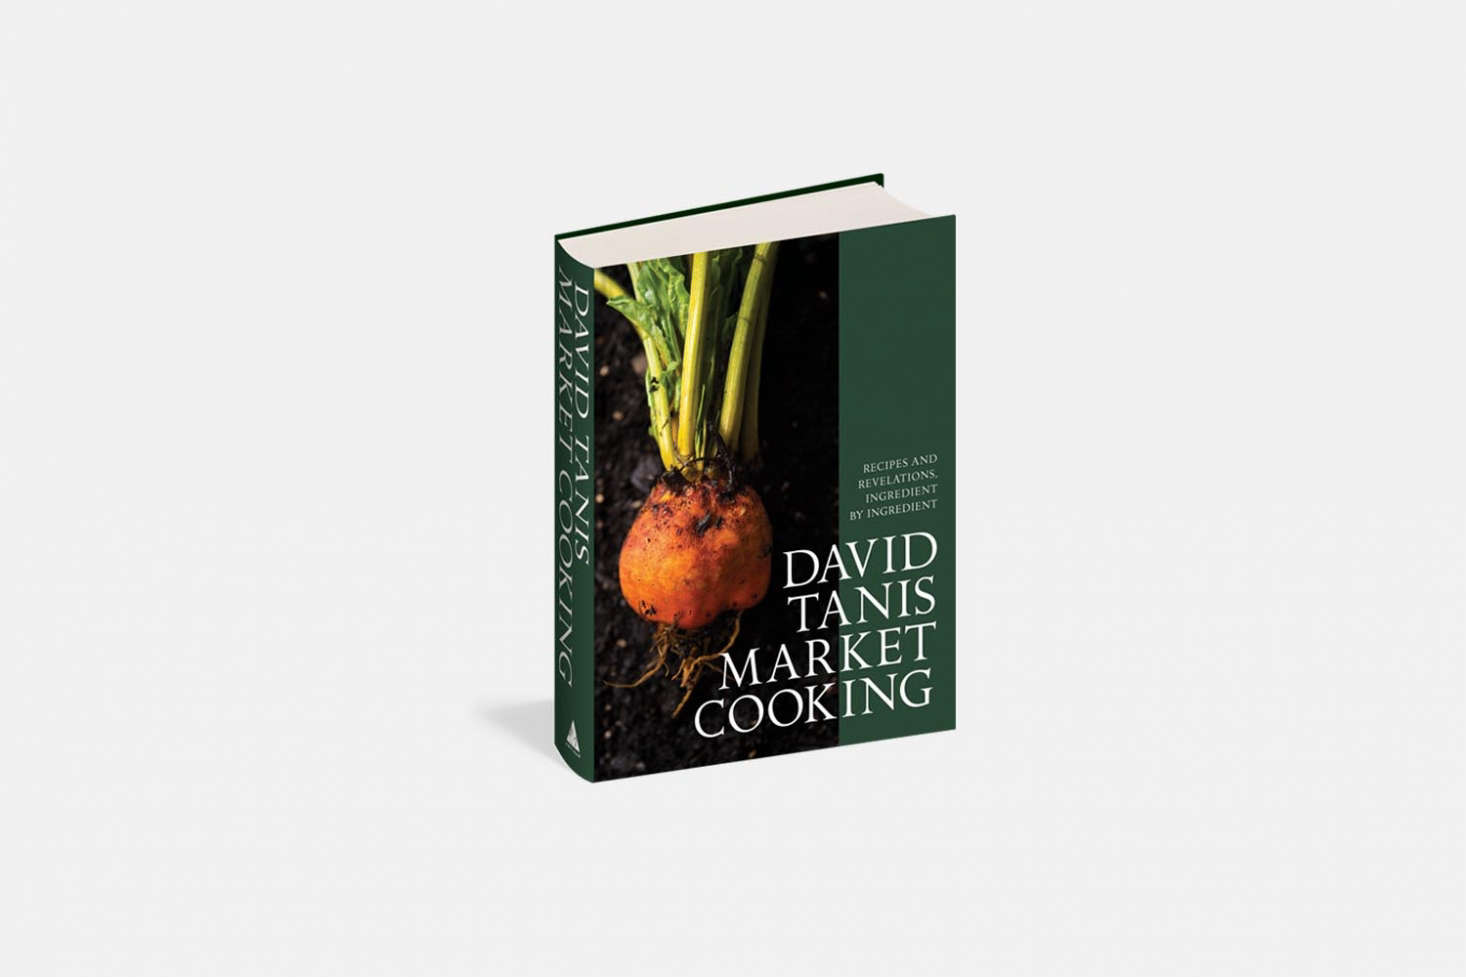 "David Tanis Market Cooking: Recipes and Revelations ($23.11), the latest cookbook from chef David Tanis (Chez Panisse alum), is all about ""how to be more discerning in the market and freer in the kitchen."" See our visit to his own kitchen in Chef David Tanis's Low-Tech, Economical, and Beautifully Soulful Kitchen in the East Village."